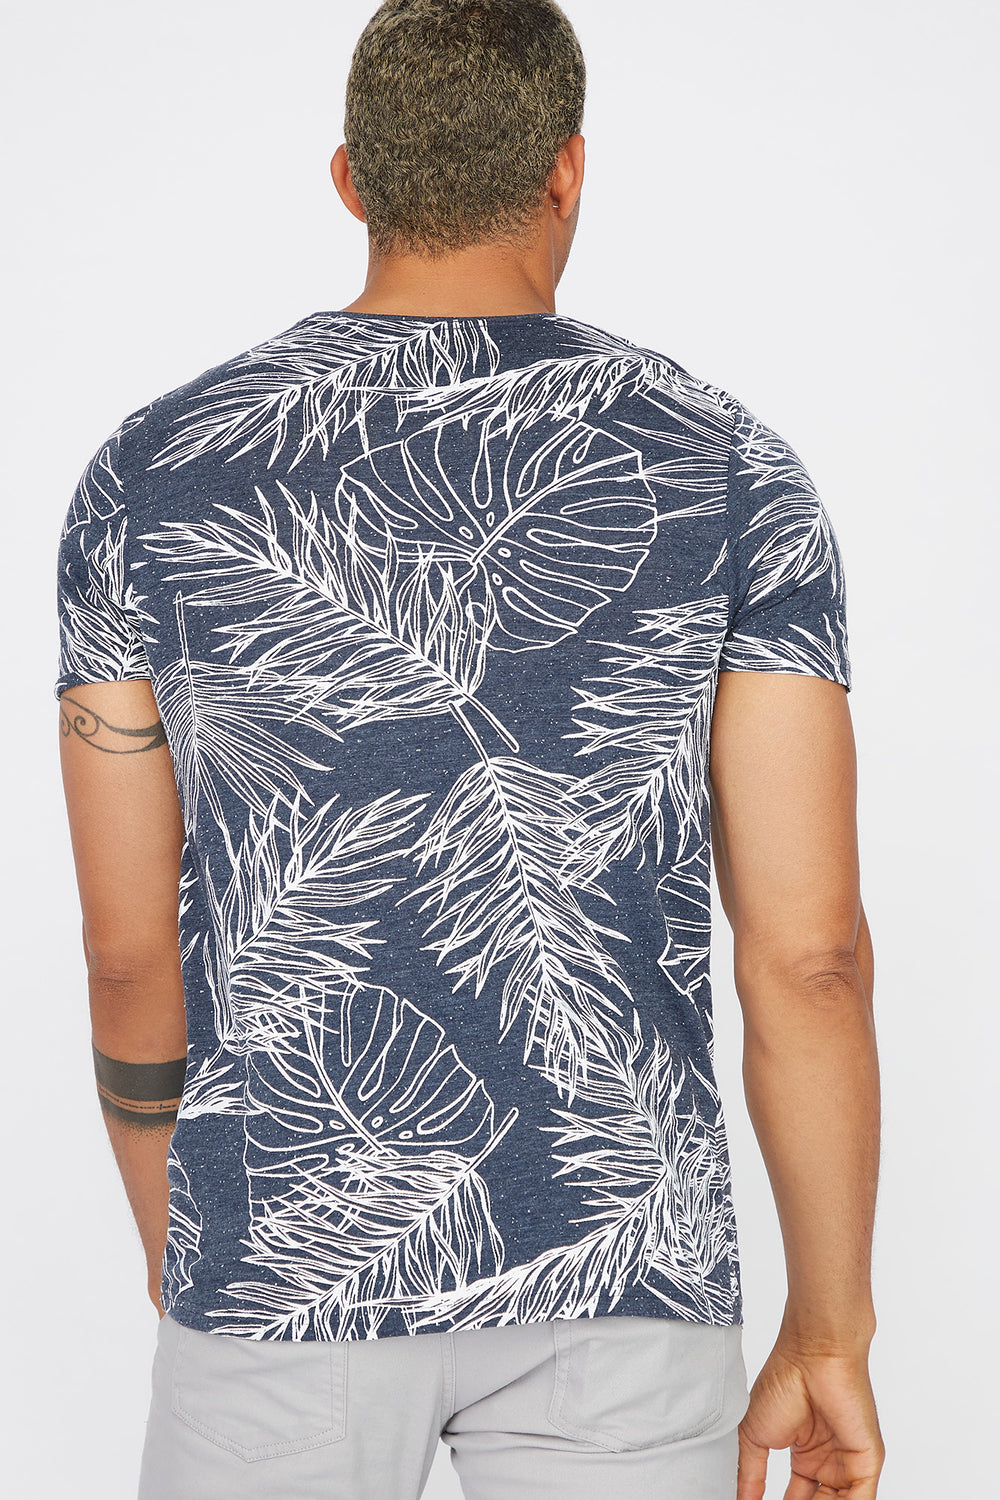 Speckled Palm Leaf Printed T-Shirt Denim Blue